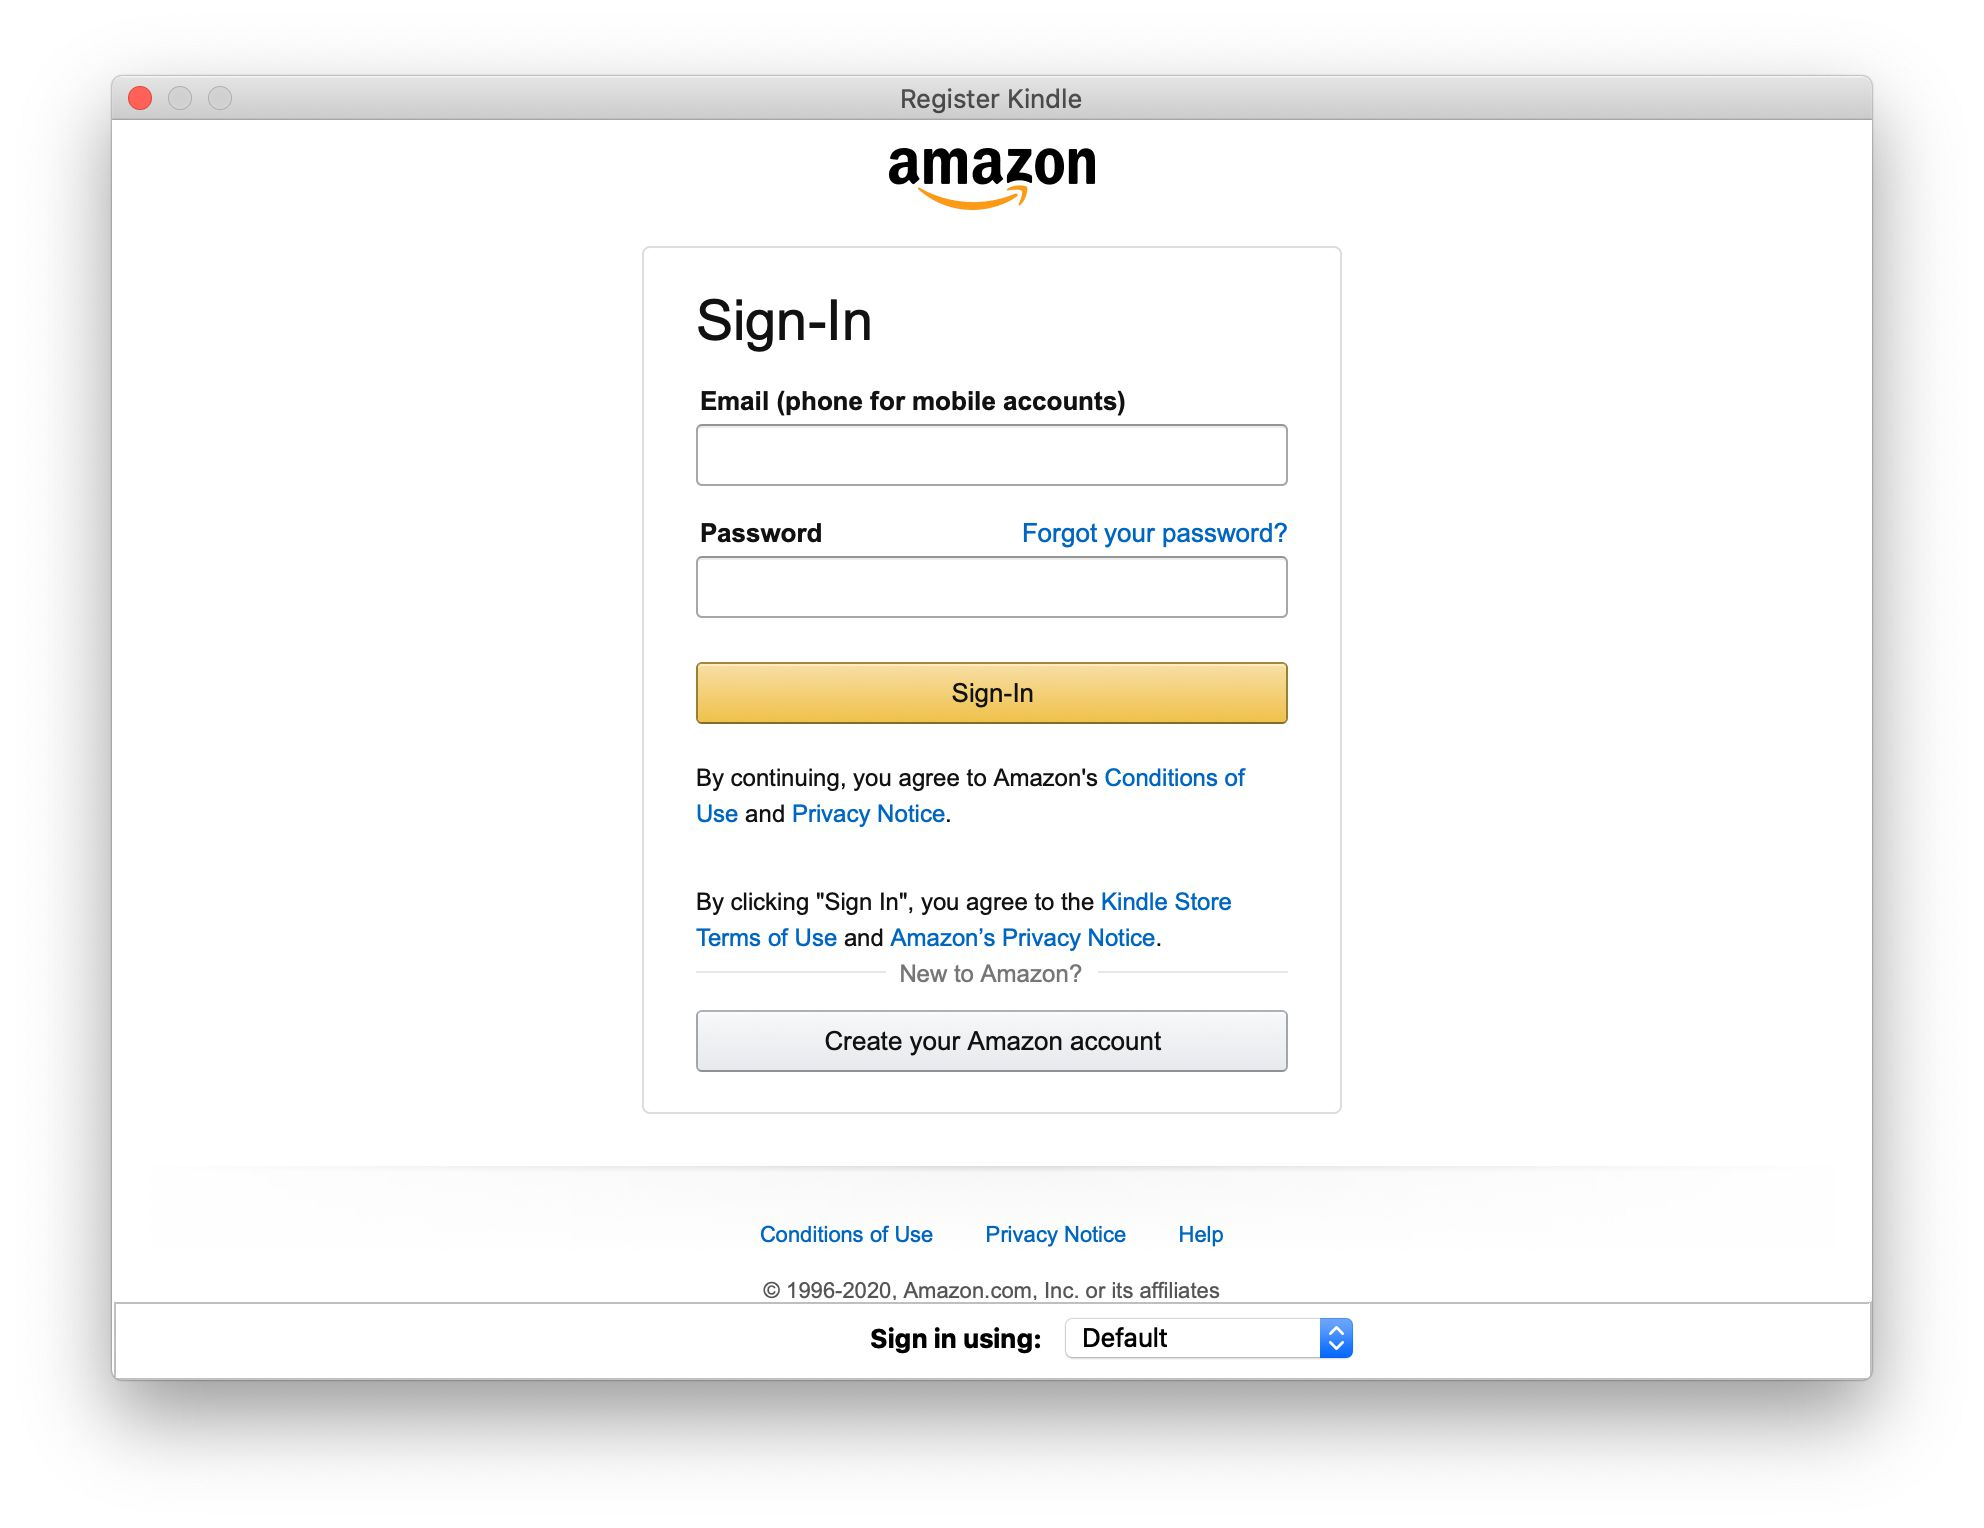 Amazon sign-in screen in the Kindle app